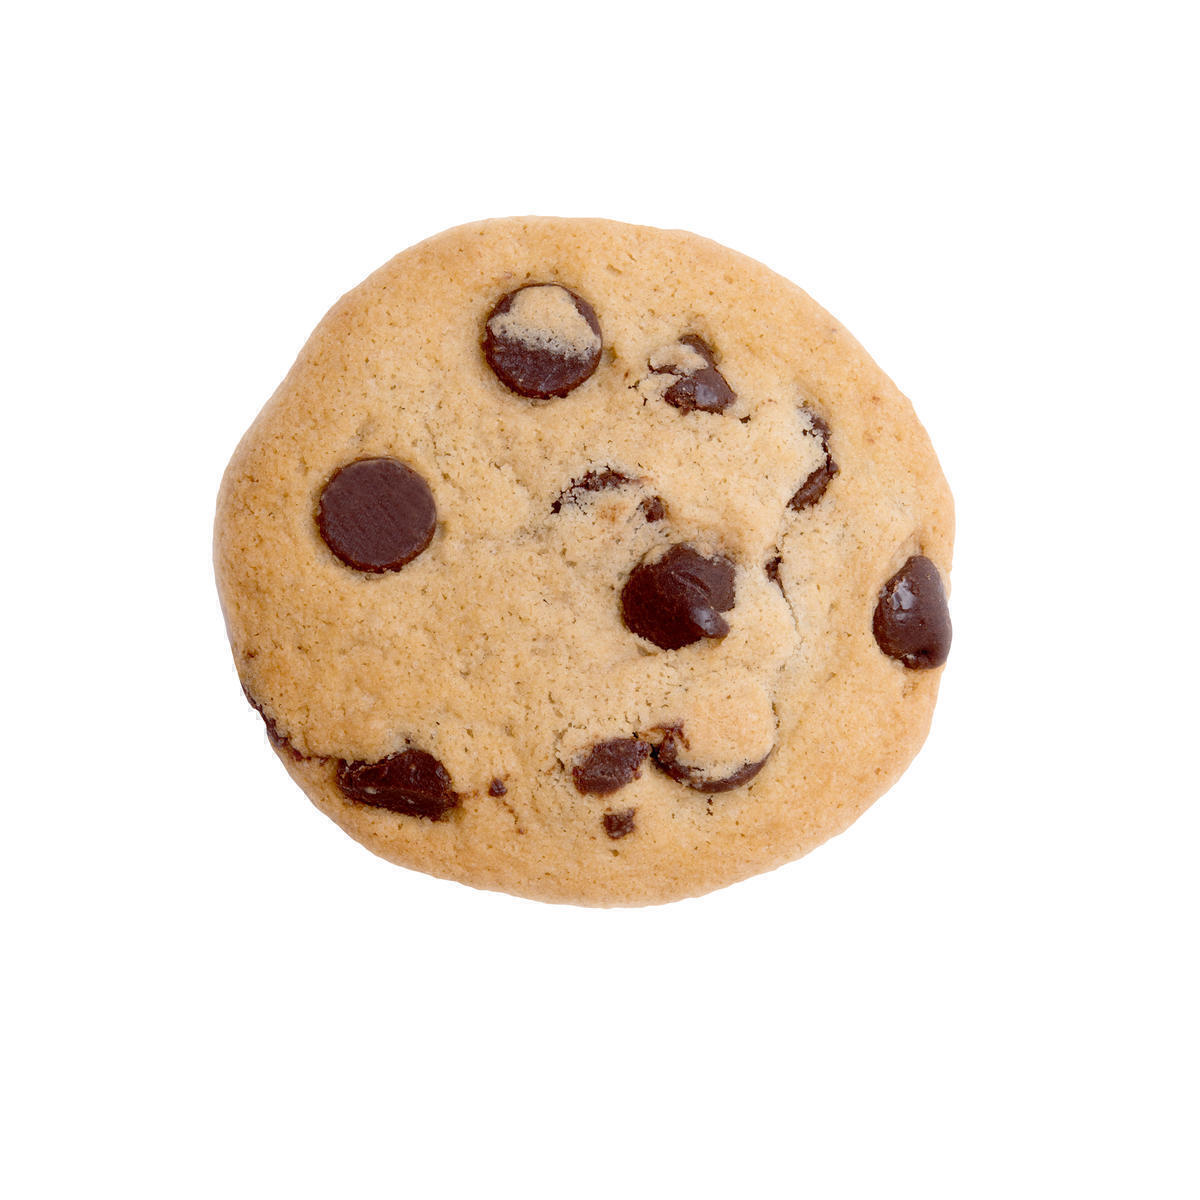 Best Maid Smart Grains Chocolate Chip Cookie 1oz